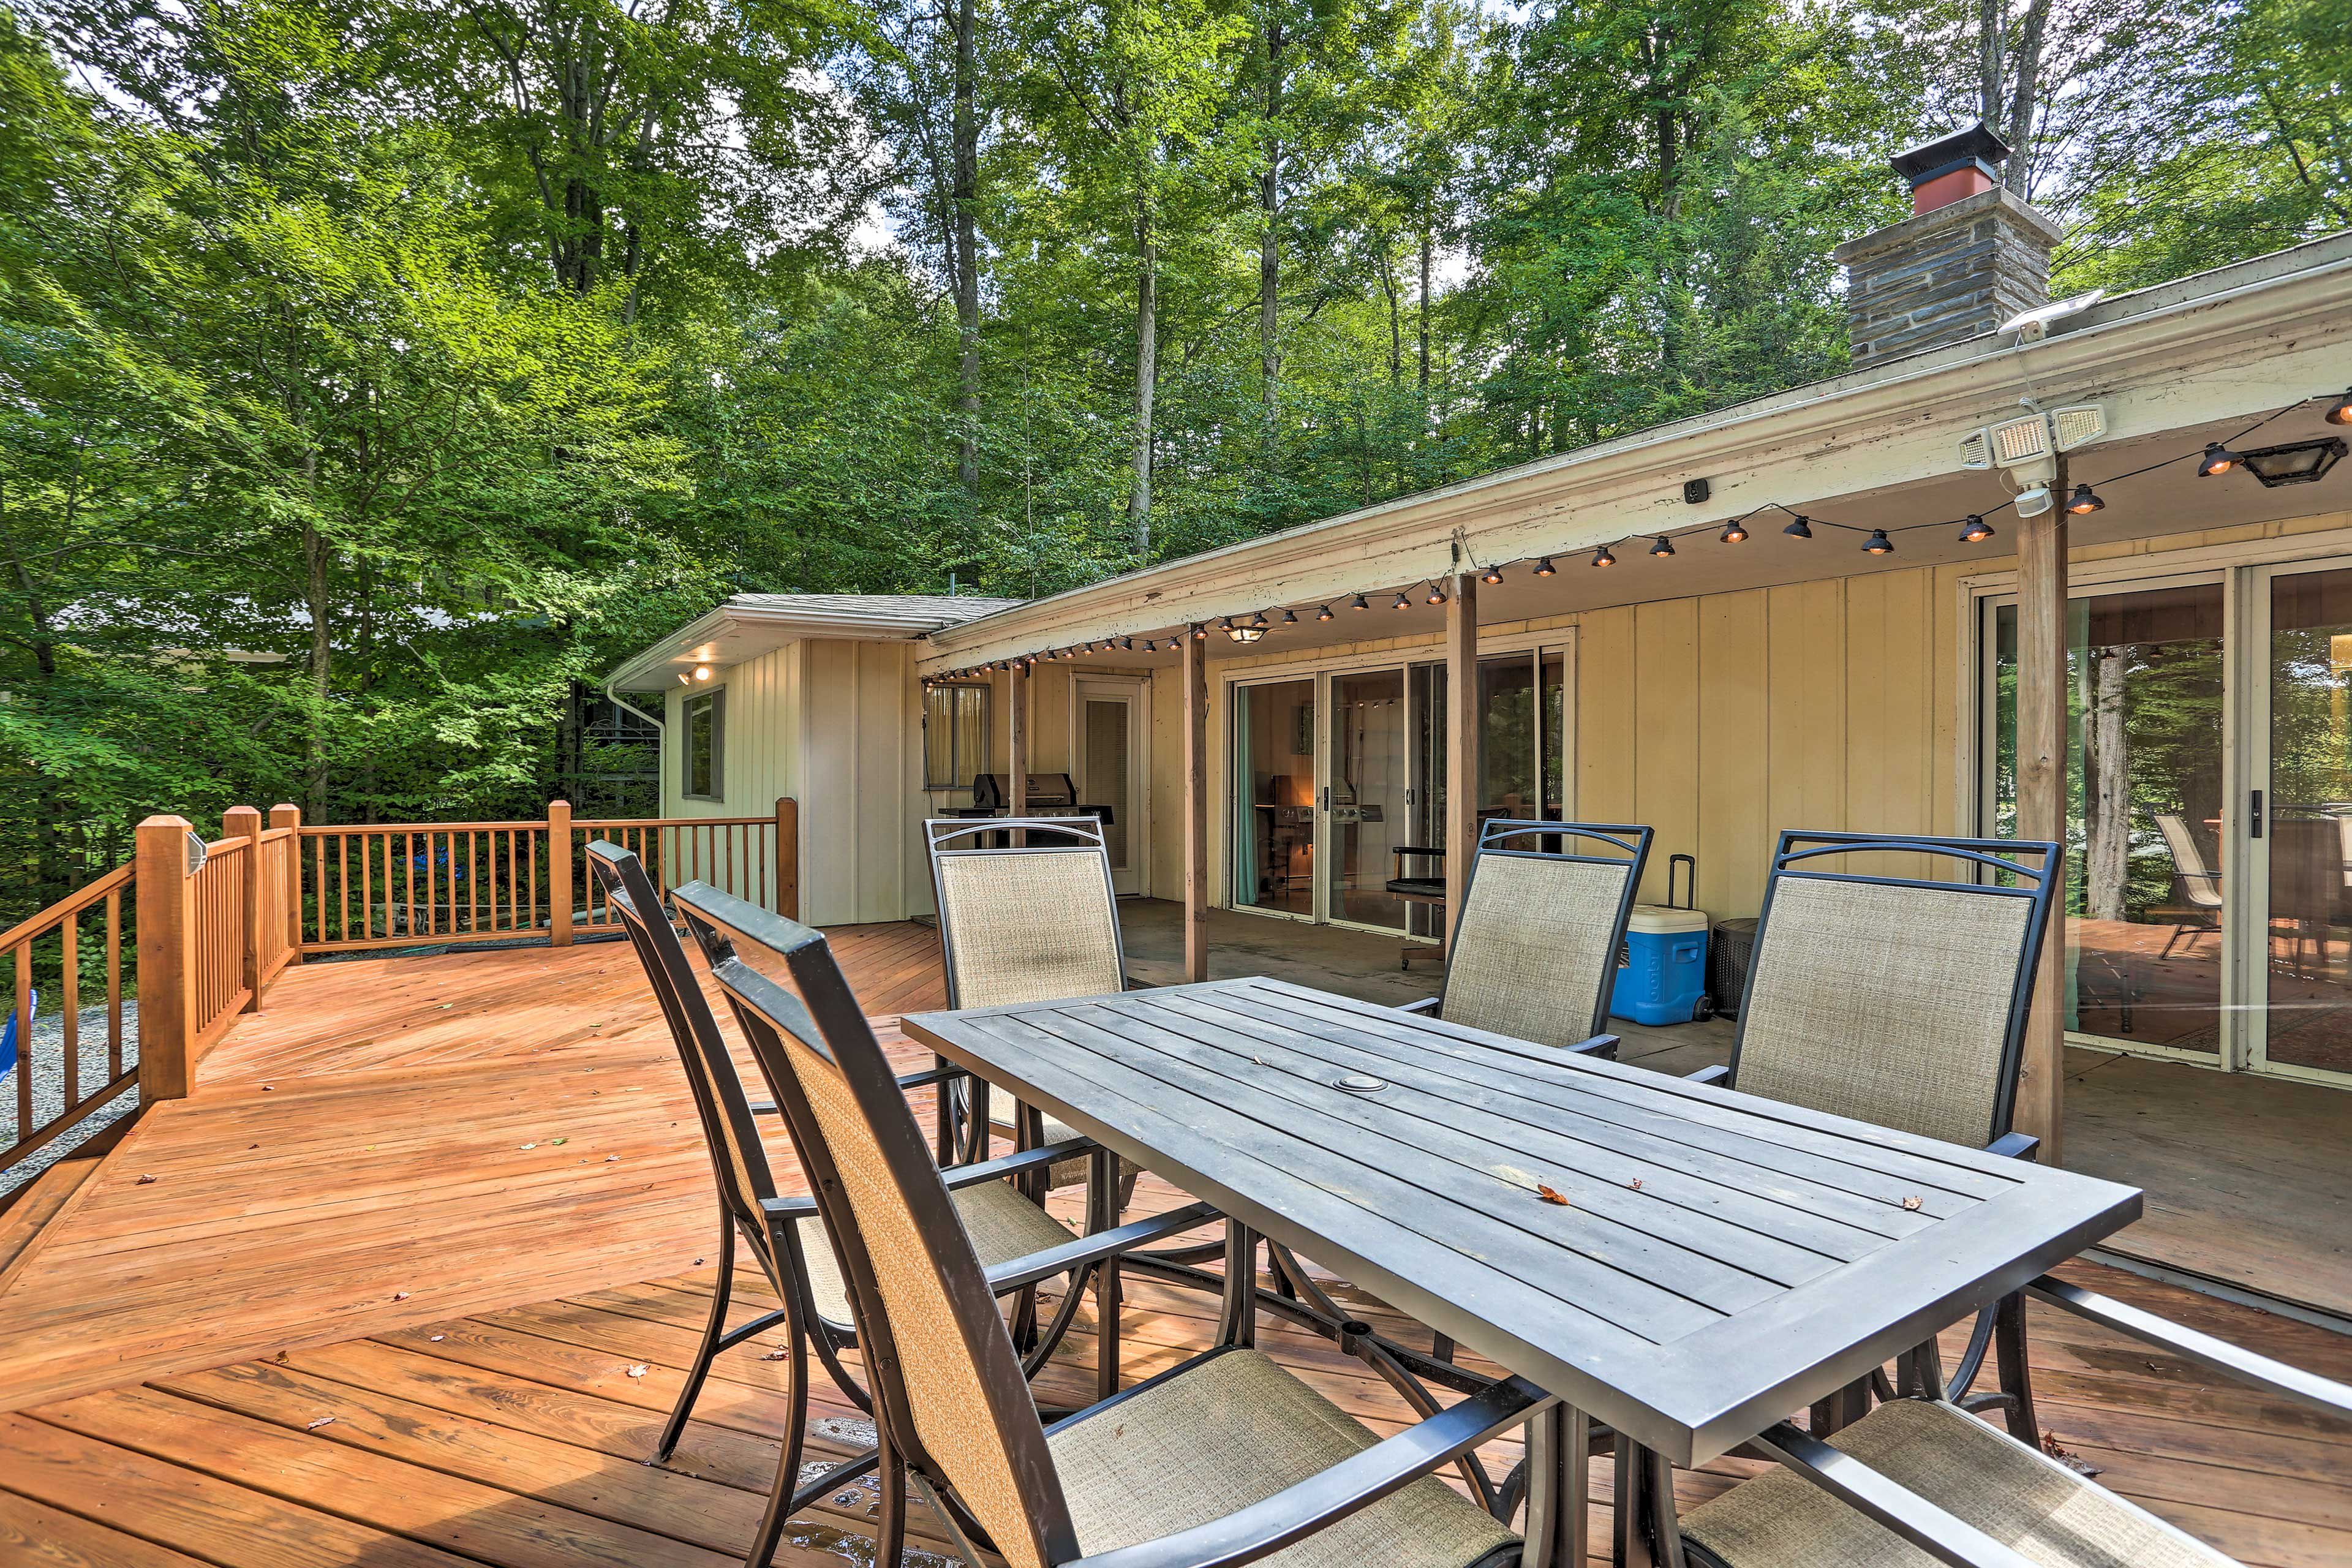 Take the meal outdoors to enjoy family time during your stay in Pocono Lake!